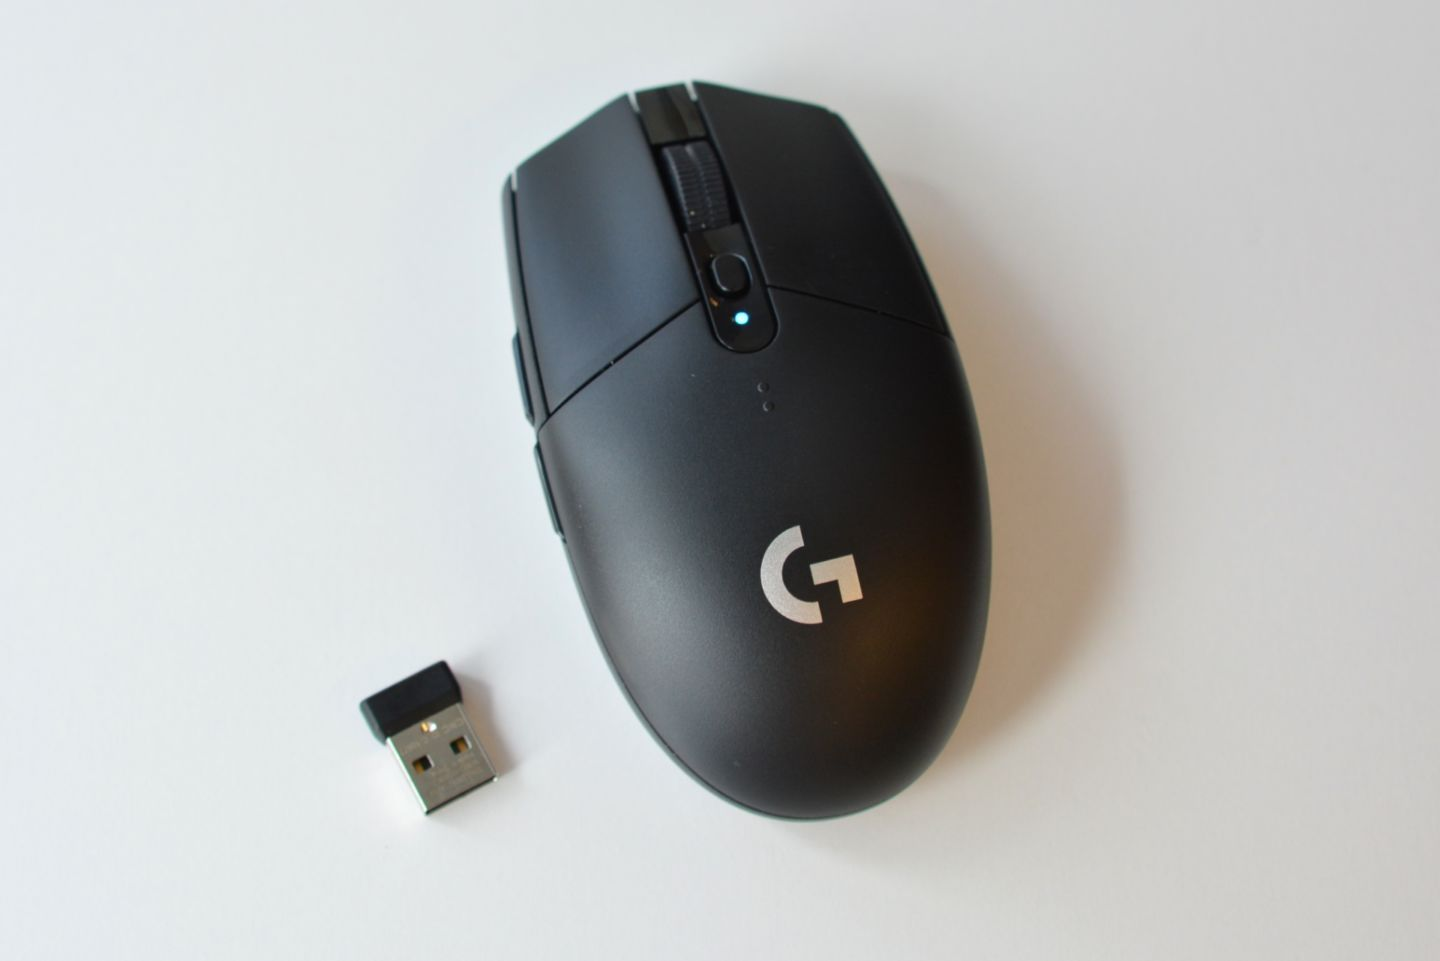 Logitech's G305 Lightspeed wireless gaming mouse.